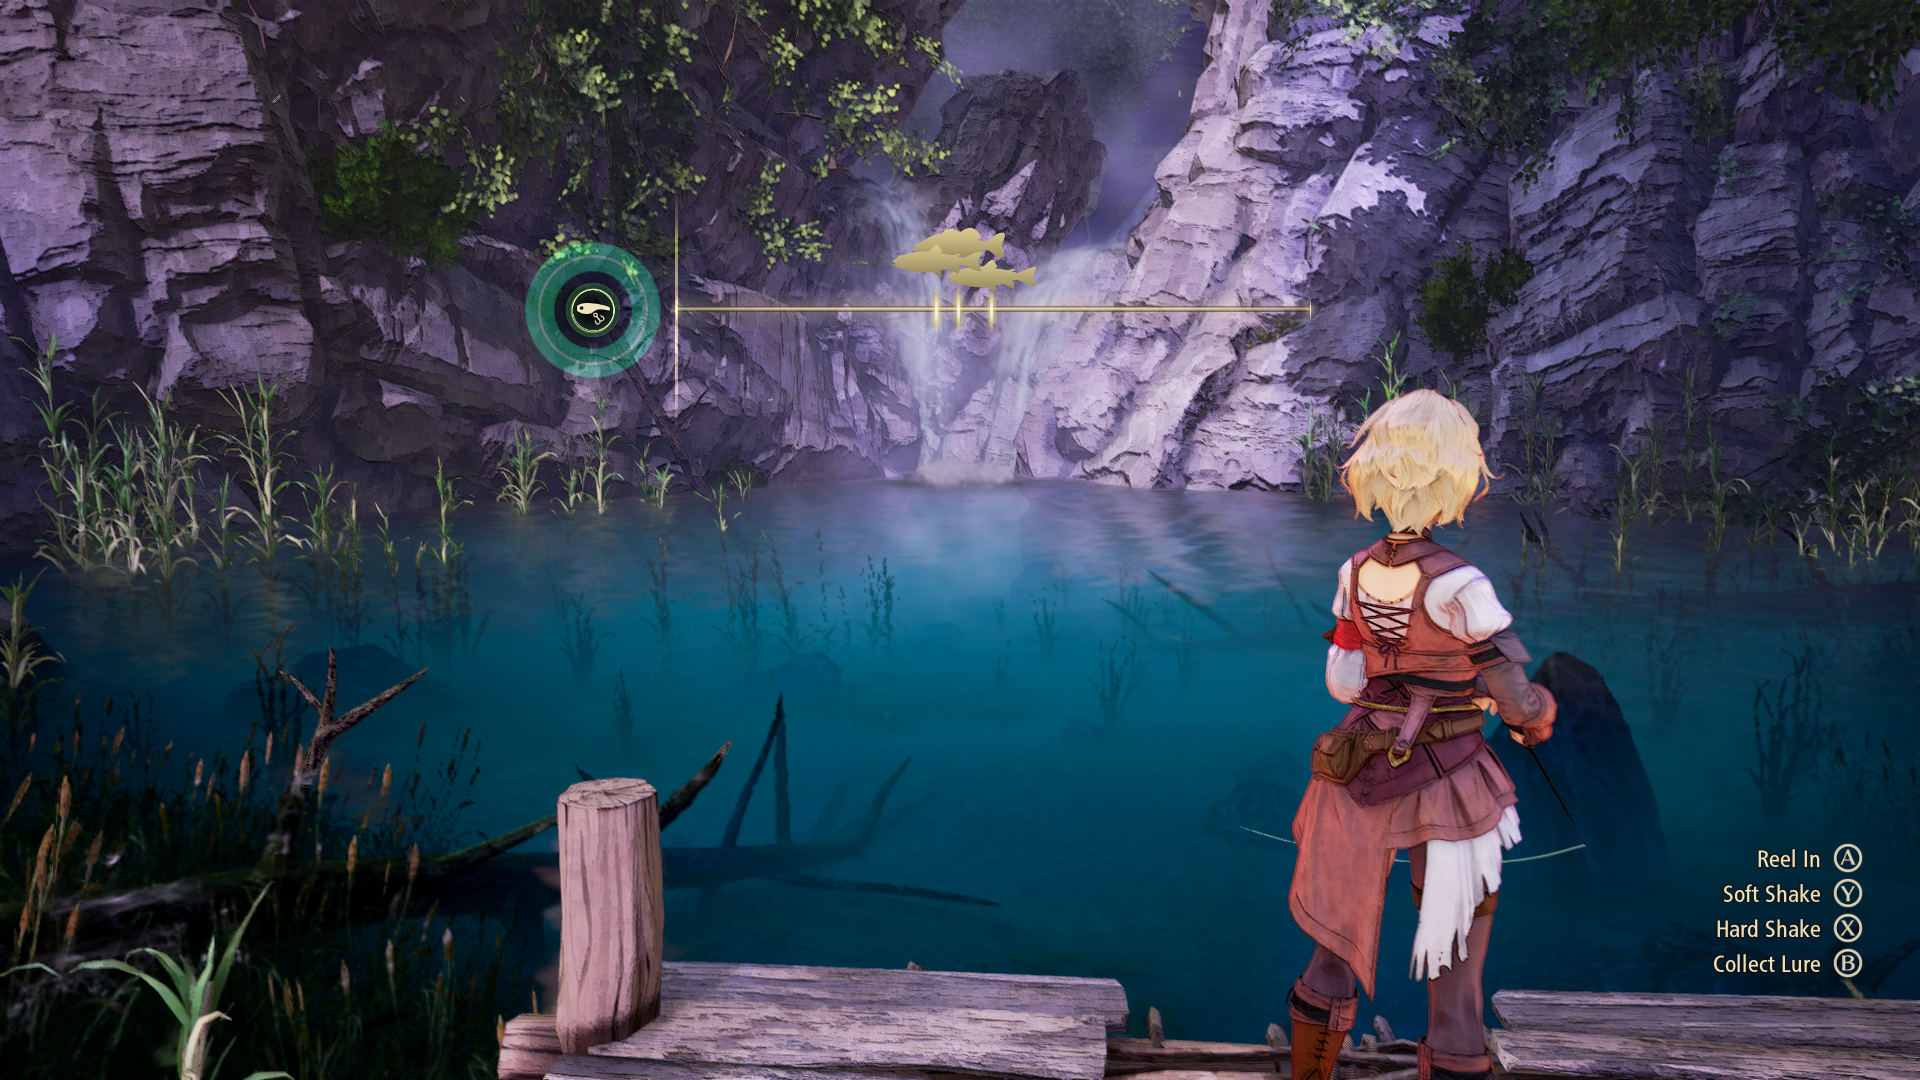 tales-of-arise-how-to-fish-phase-3